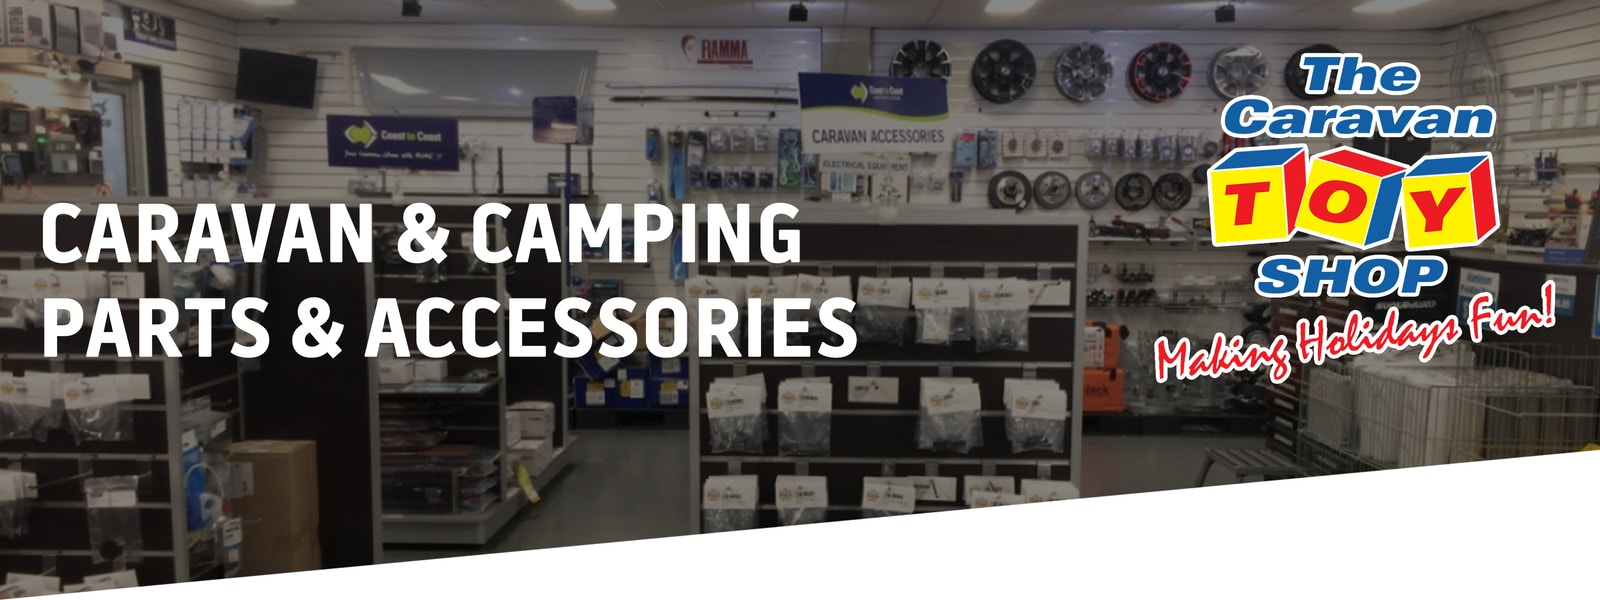 The Caravan Toyshop | Caravan Accessories & Parts | CaravanLand